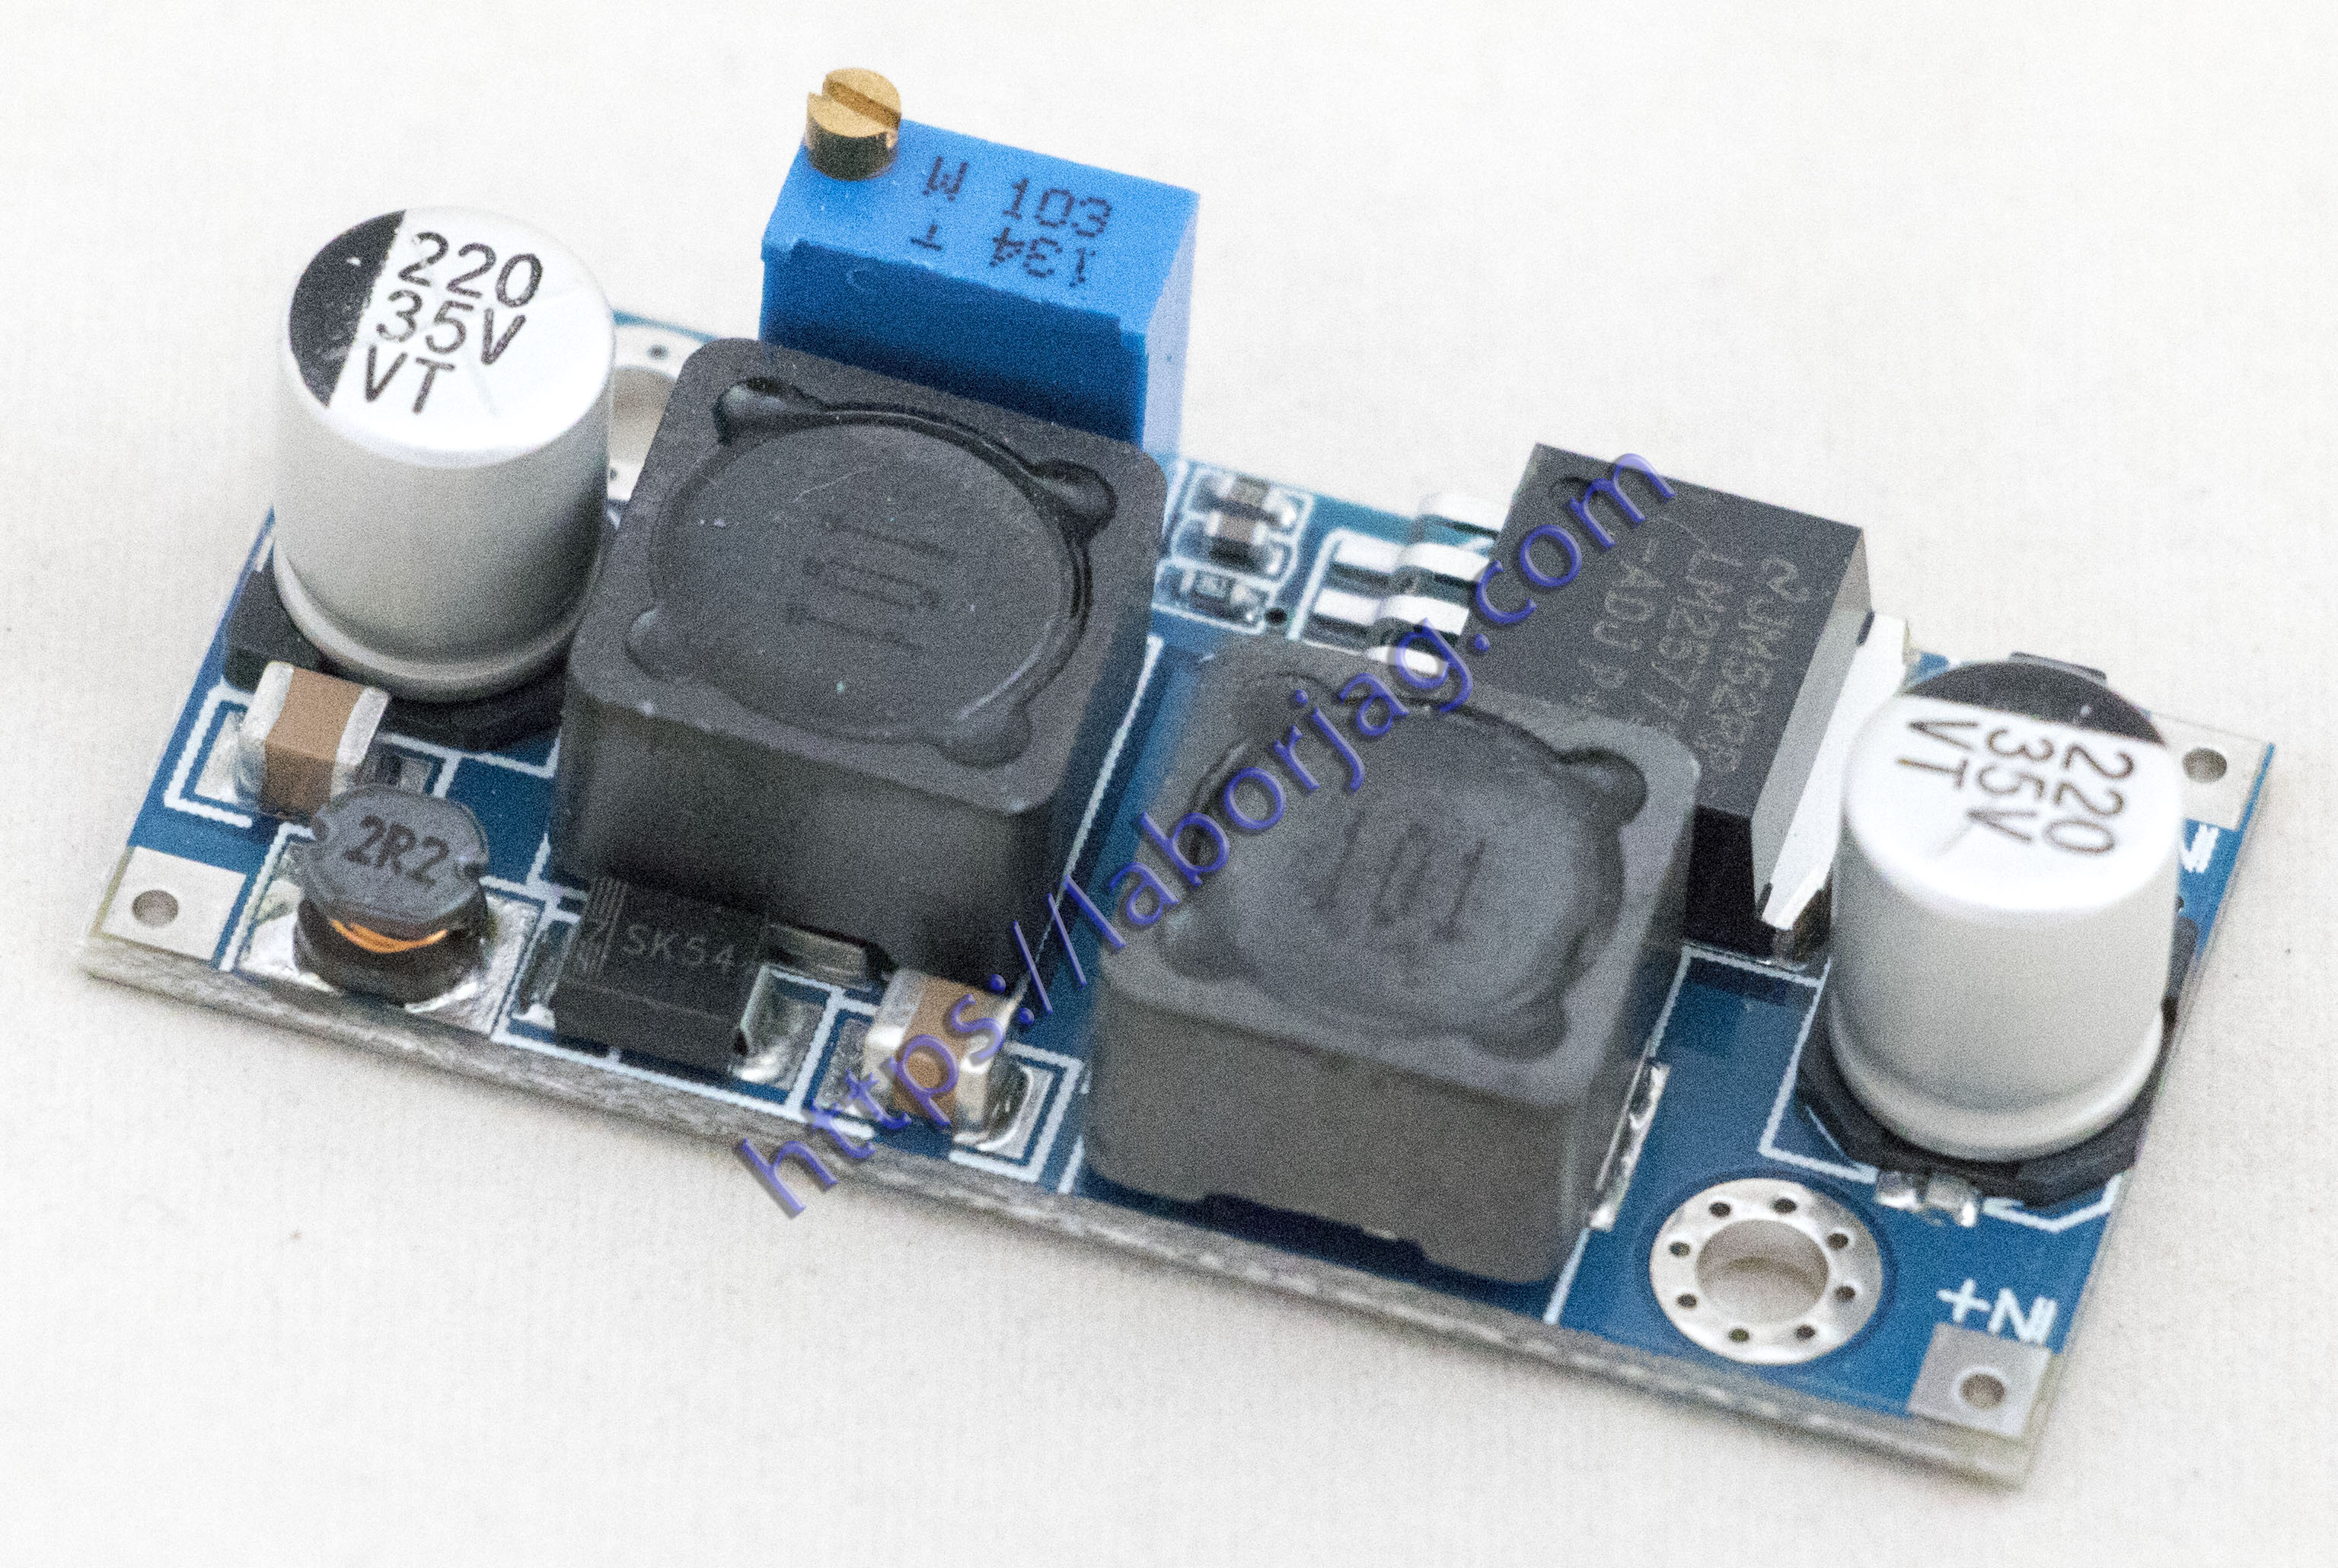 Active Components Bright 5 Pcs Dc-dc 3-30v To 4-35v Lm2577 Boost Diy Mobile Phone Power Supply Module